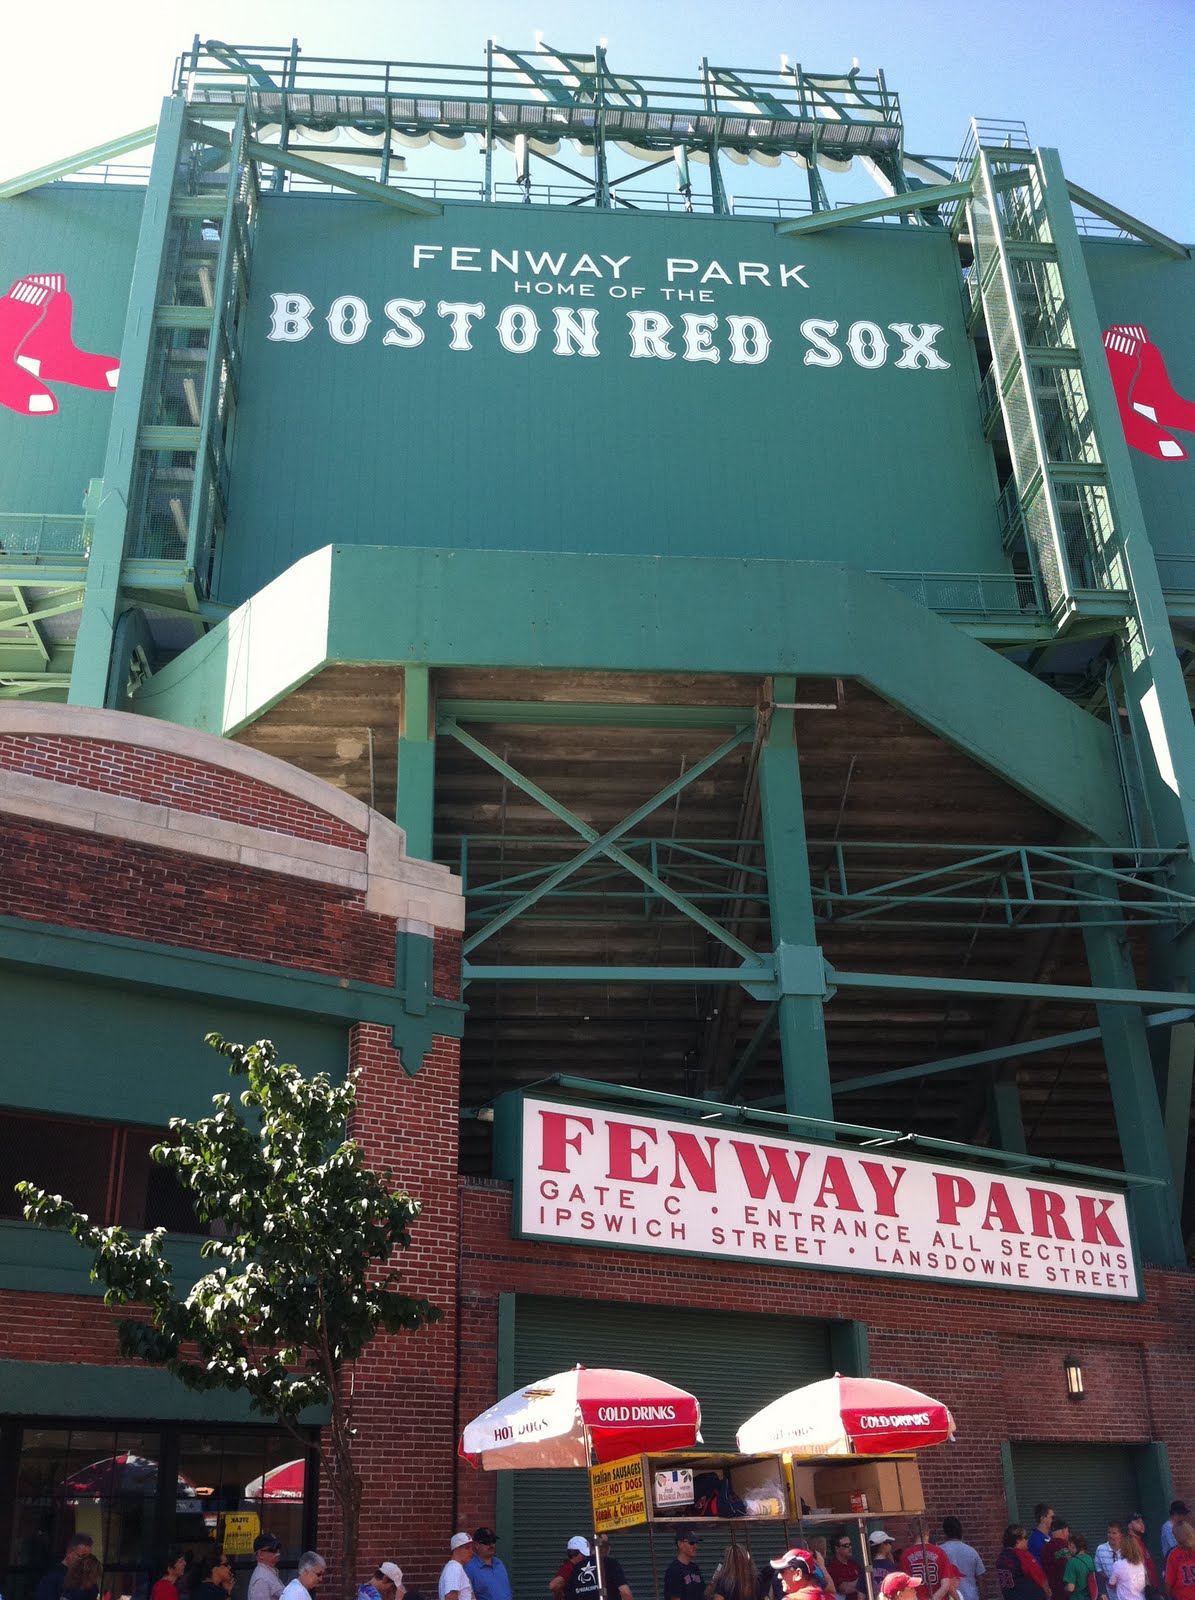 Fenway Park Iphone Wallpaper | www.imgkid.com - The Image ...